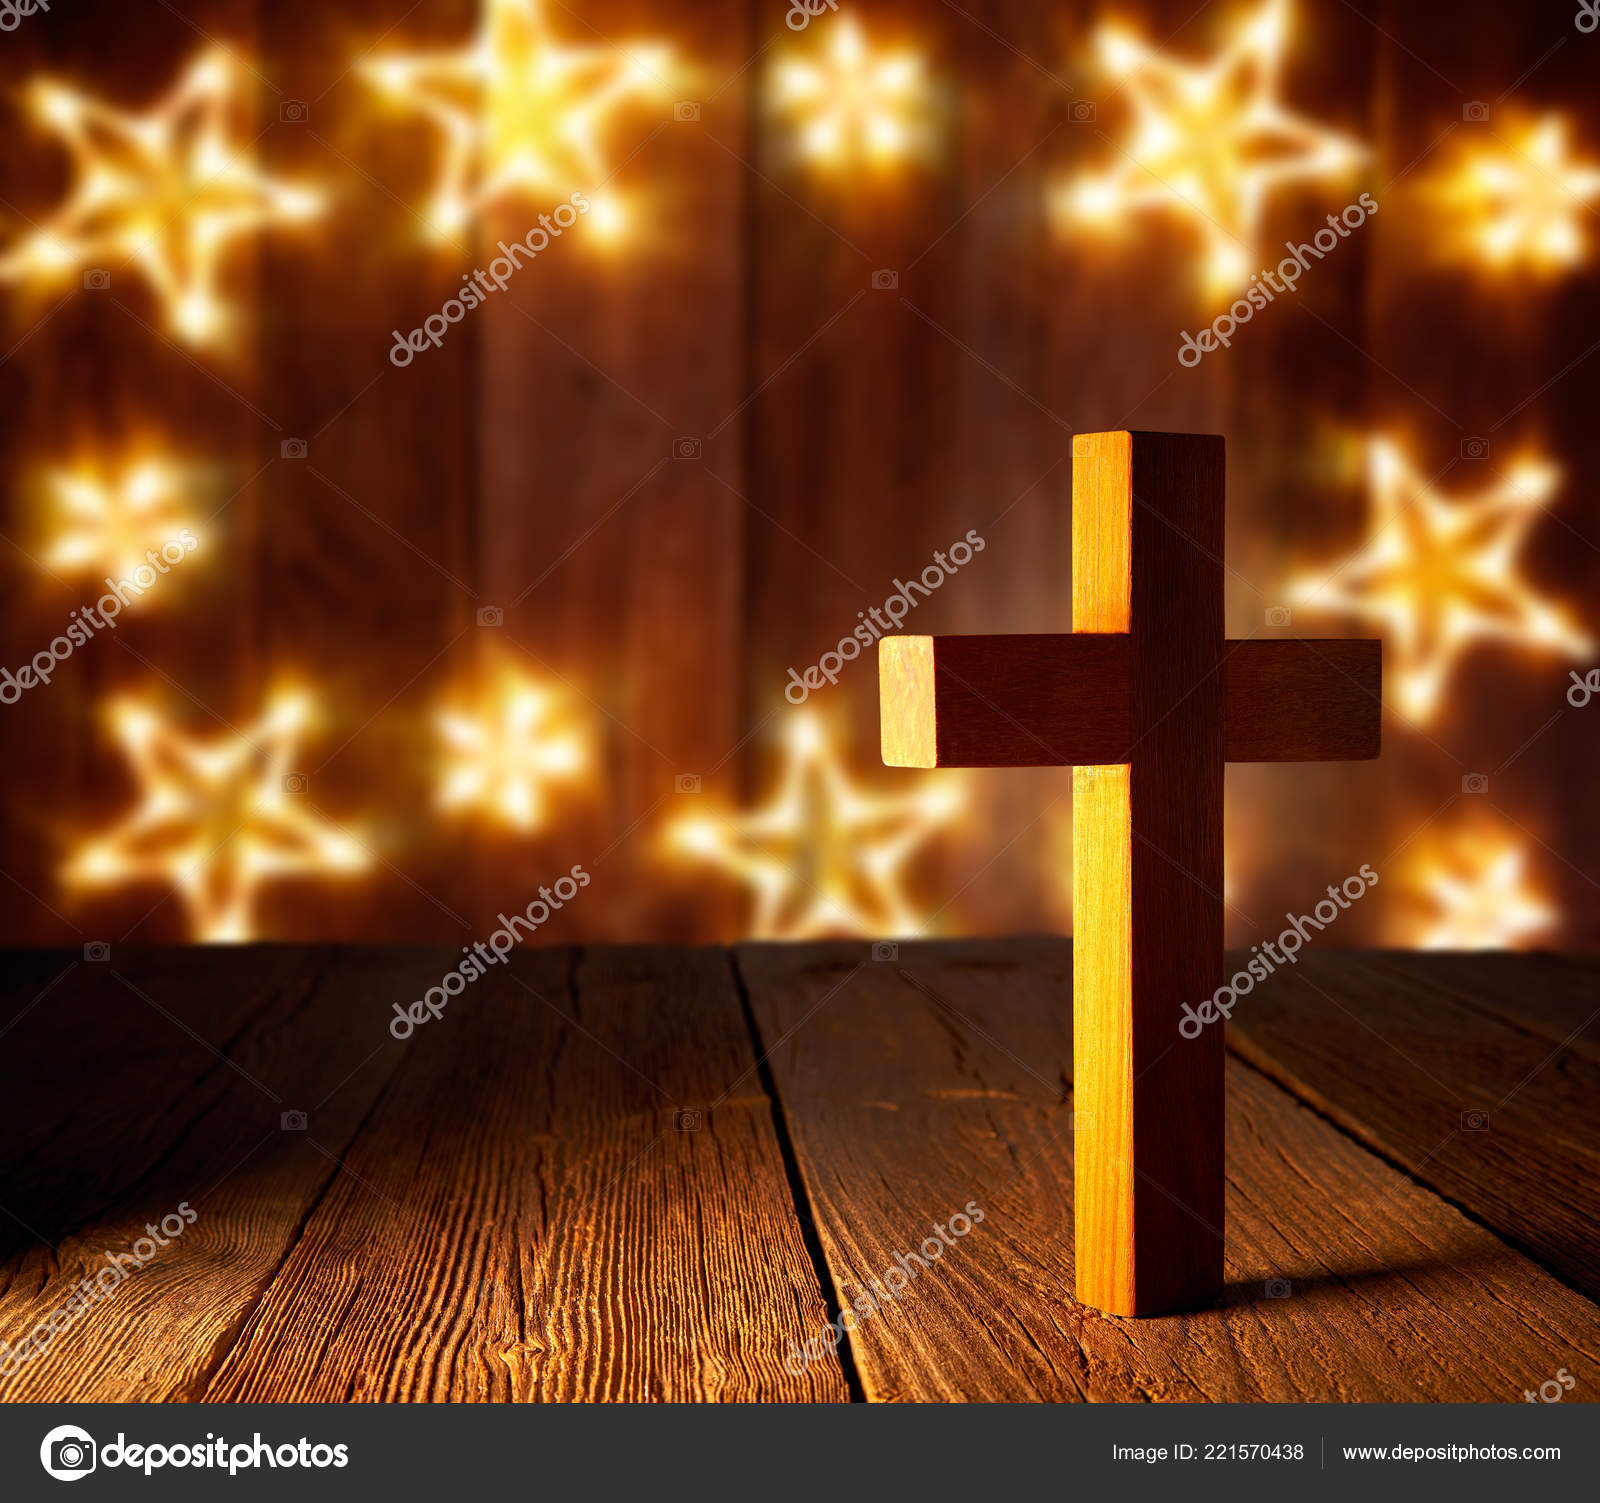 Christmas Background Christian.Pictures Christmas Christian Christian Wood Cross